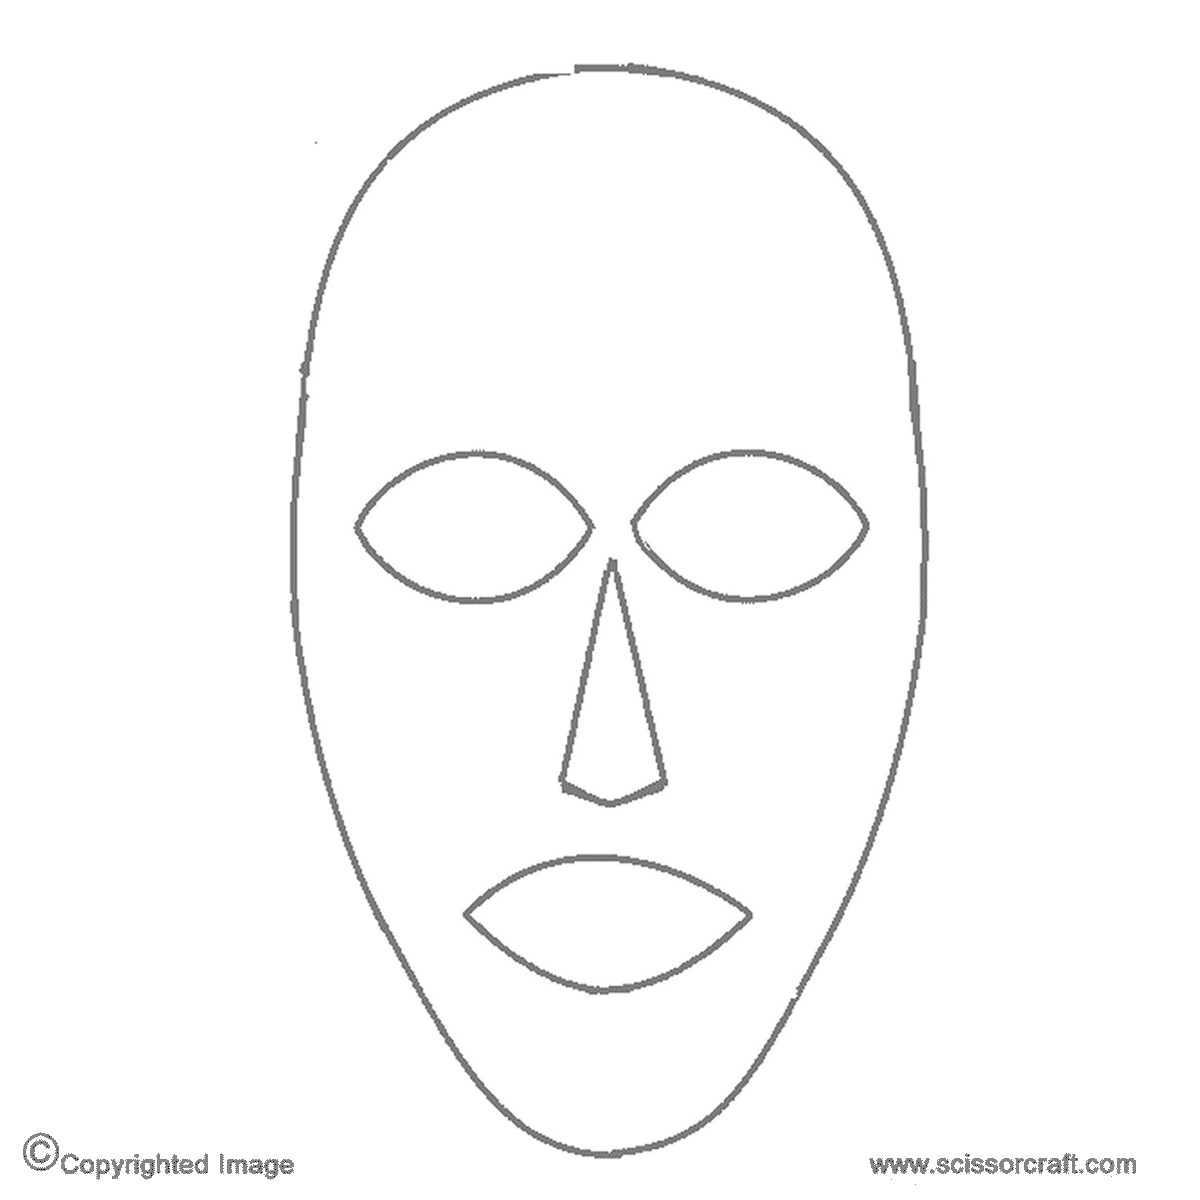 Spa Mask Template Friday 4 17 15 if You Think Reading is Boring You Re